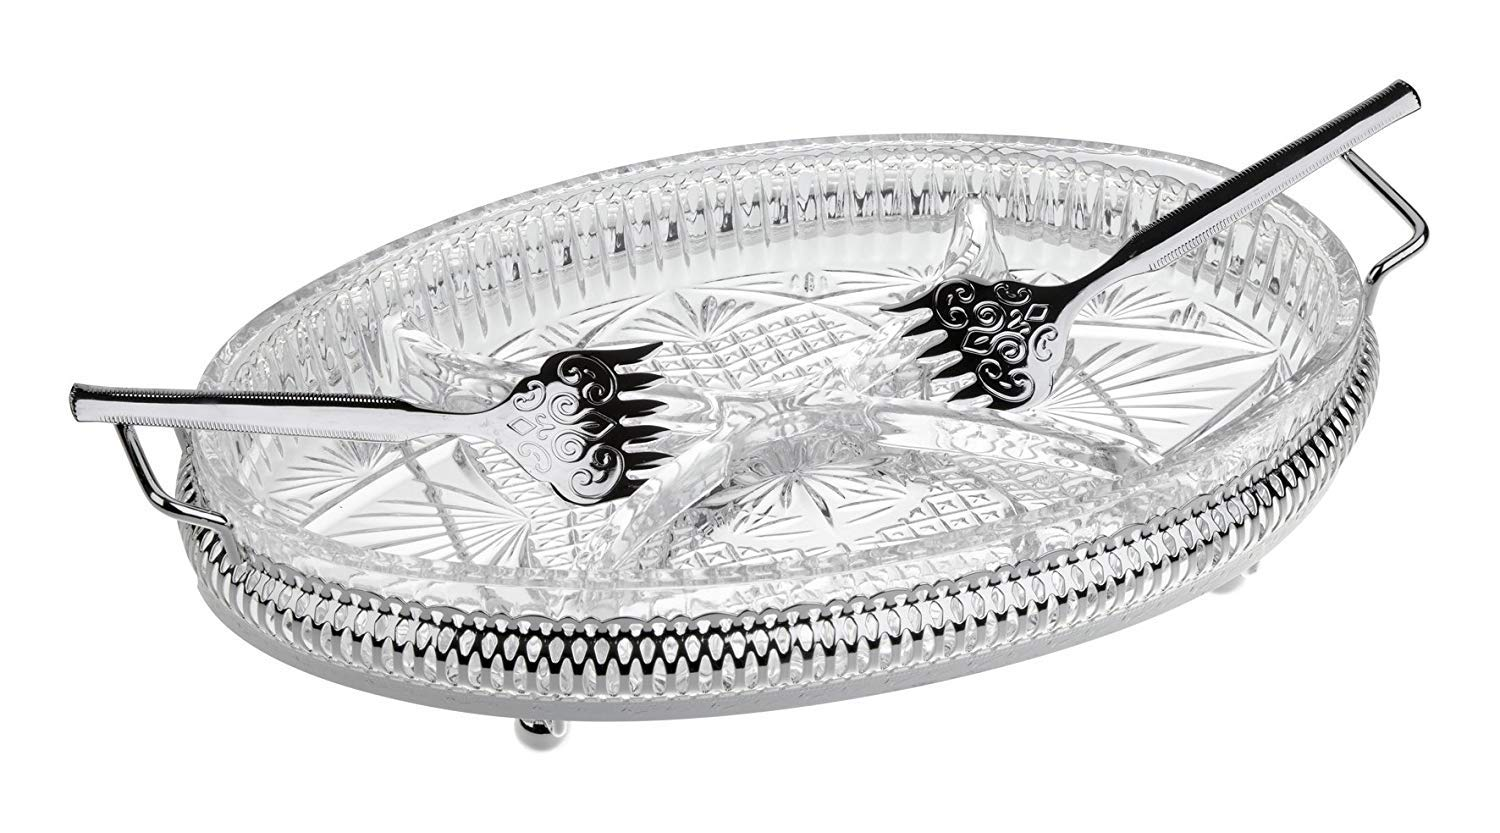 4 Division Hors d'Oeuvre - Silver Plated Queen Anne Tableware Ltd